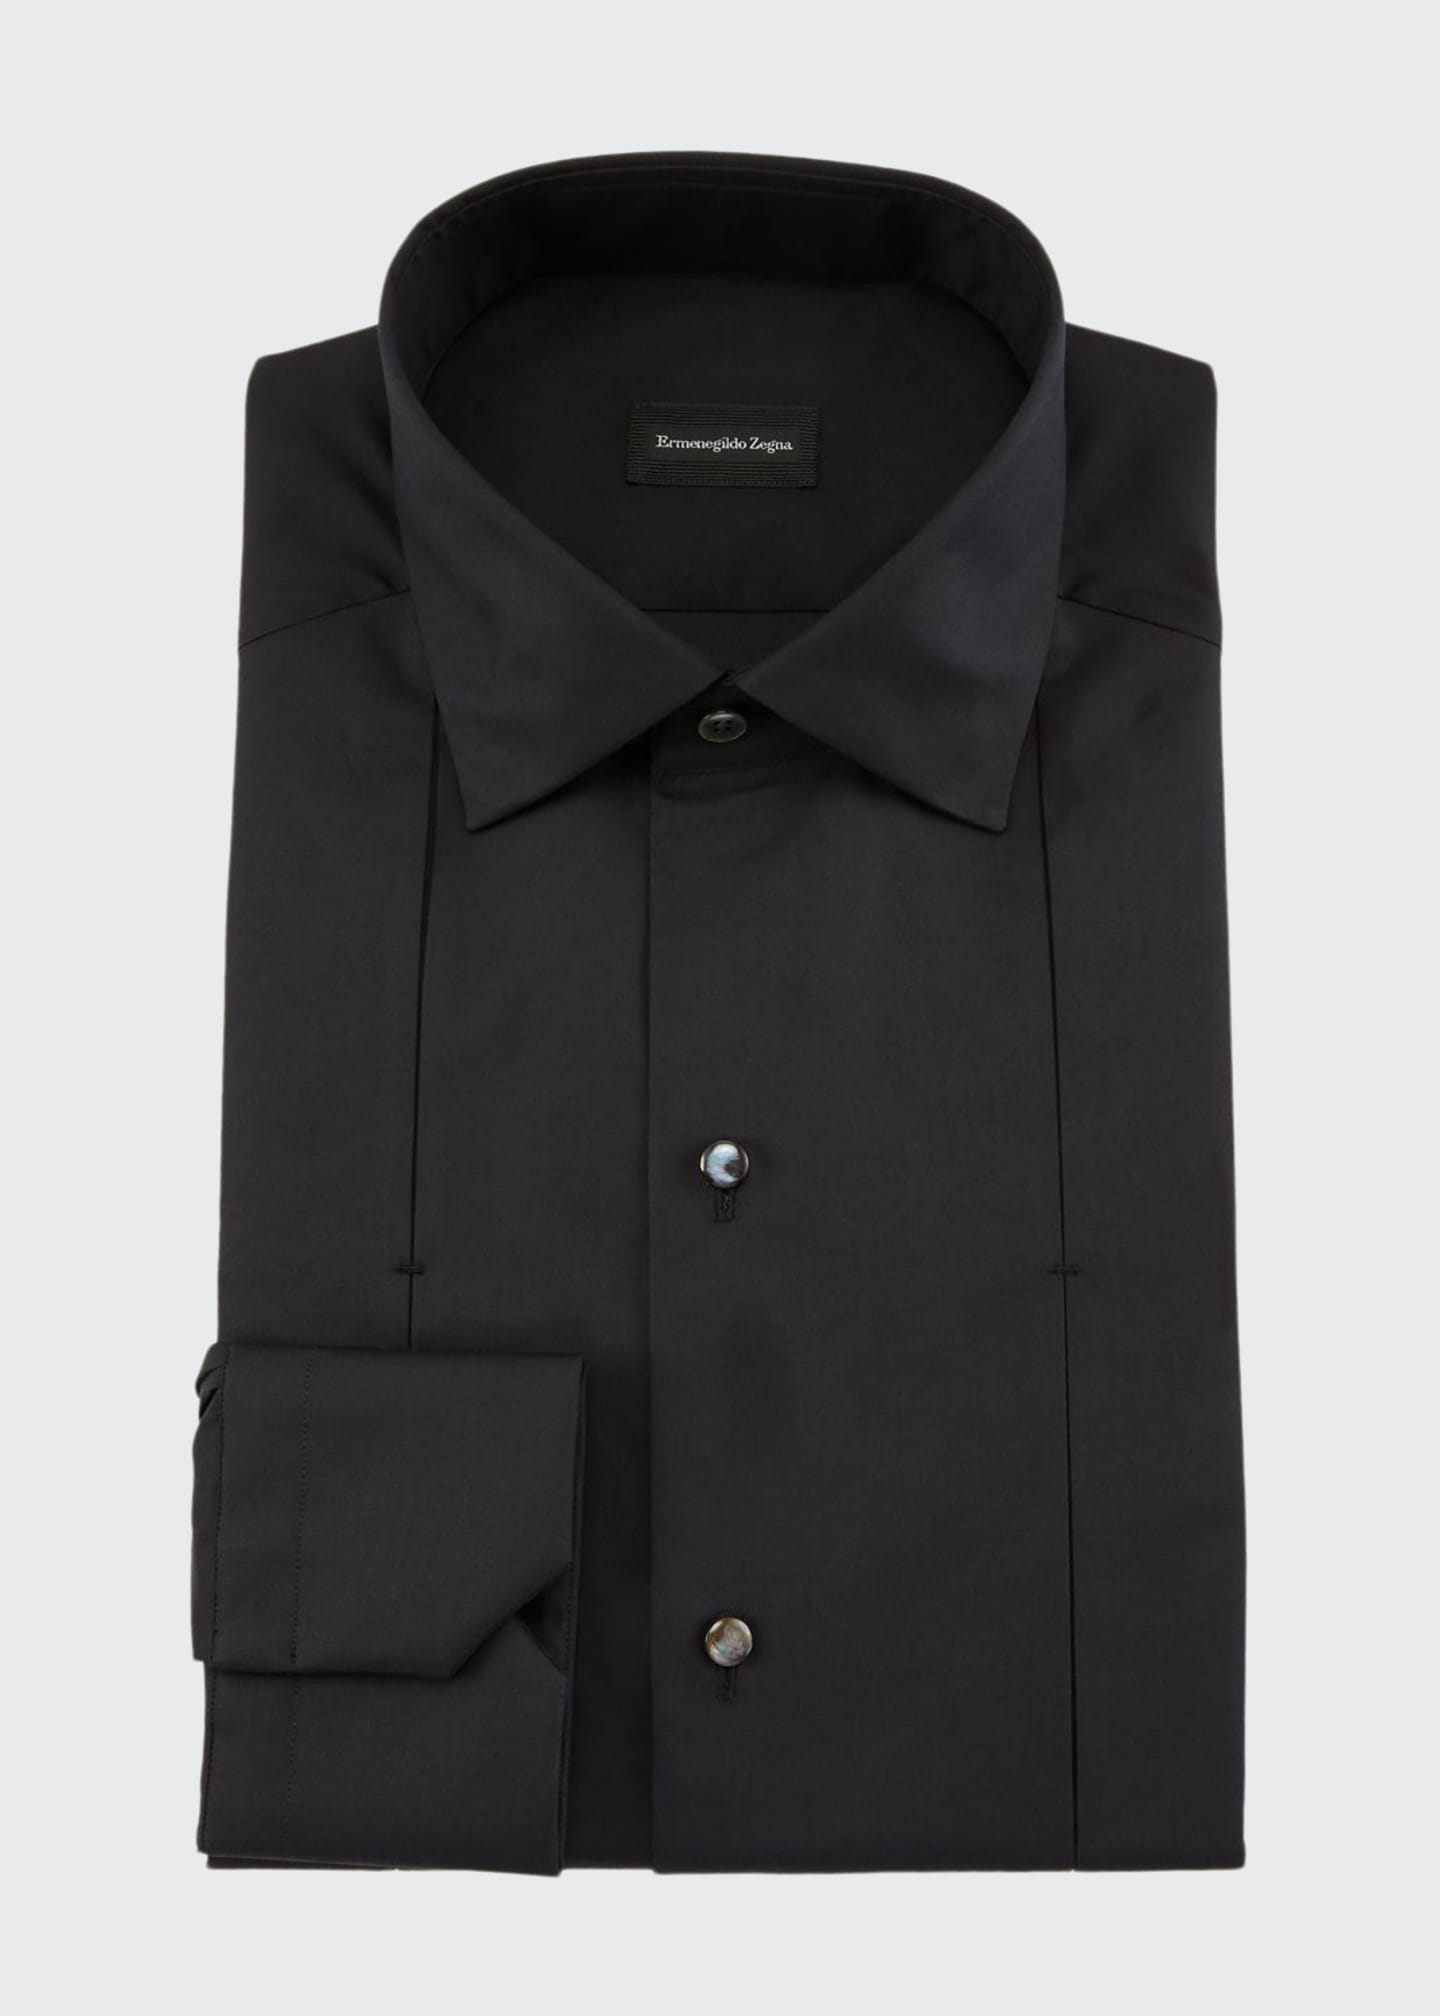 Ermenegildo Zegna Men's Cotton/Silk Diamond Formal Shirt